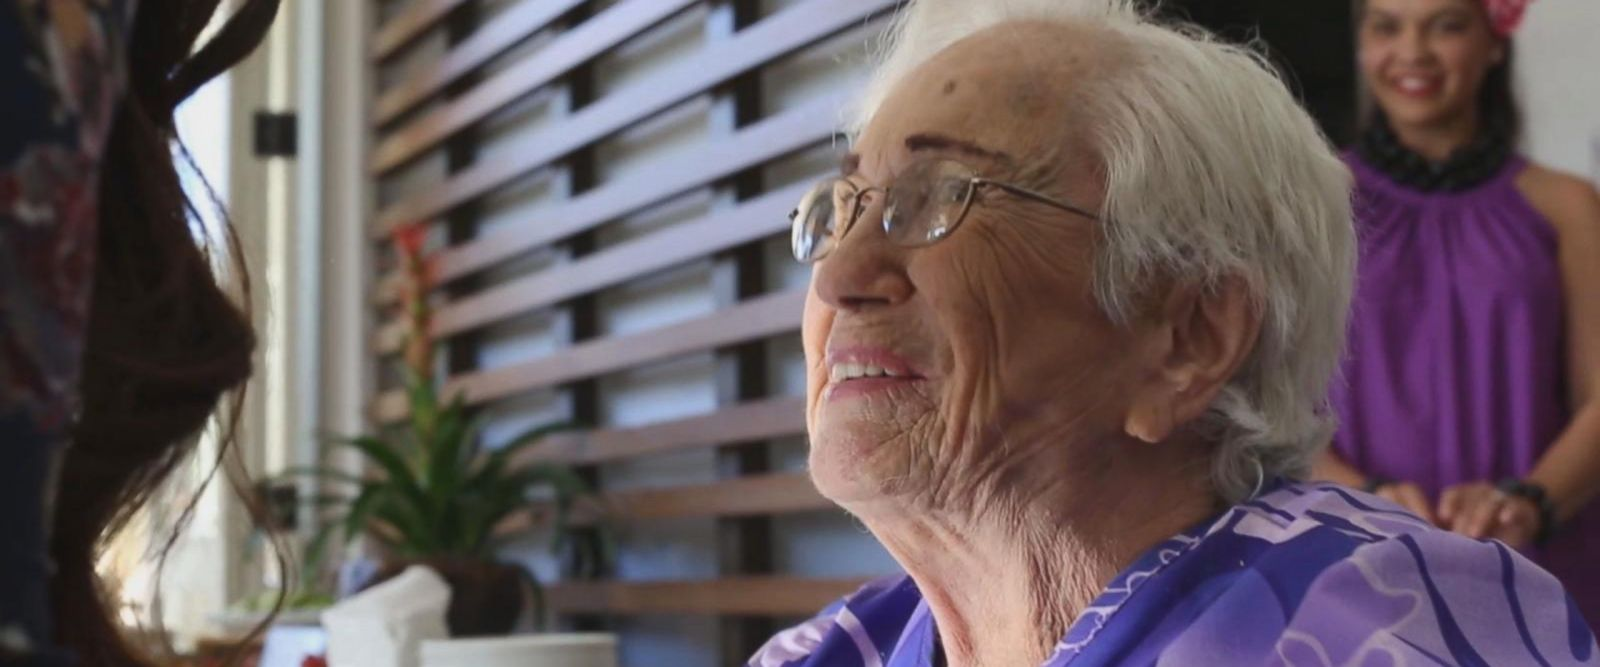 VIDEO: 94-Year-Old Woman Finally Graduates From College With 4.0 GPA